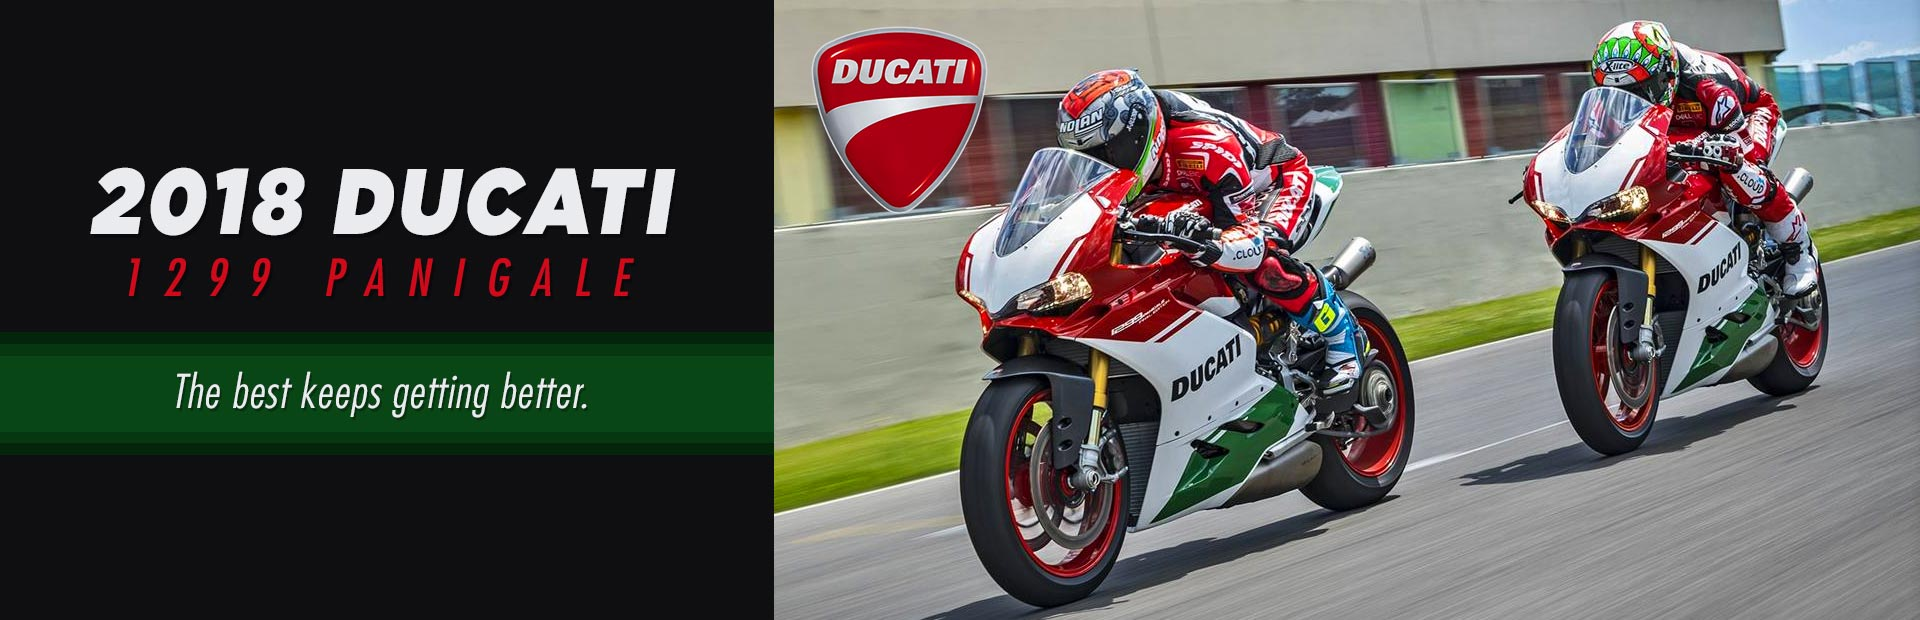 2018 Ducati 1299 Panigale: Click here to view the model.